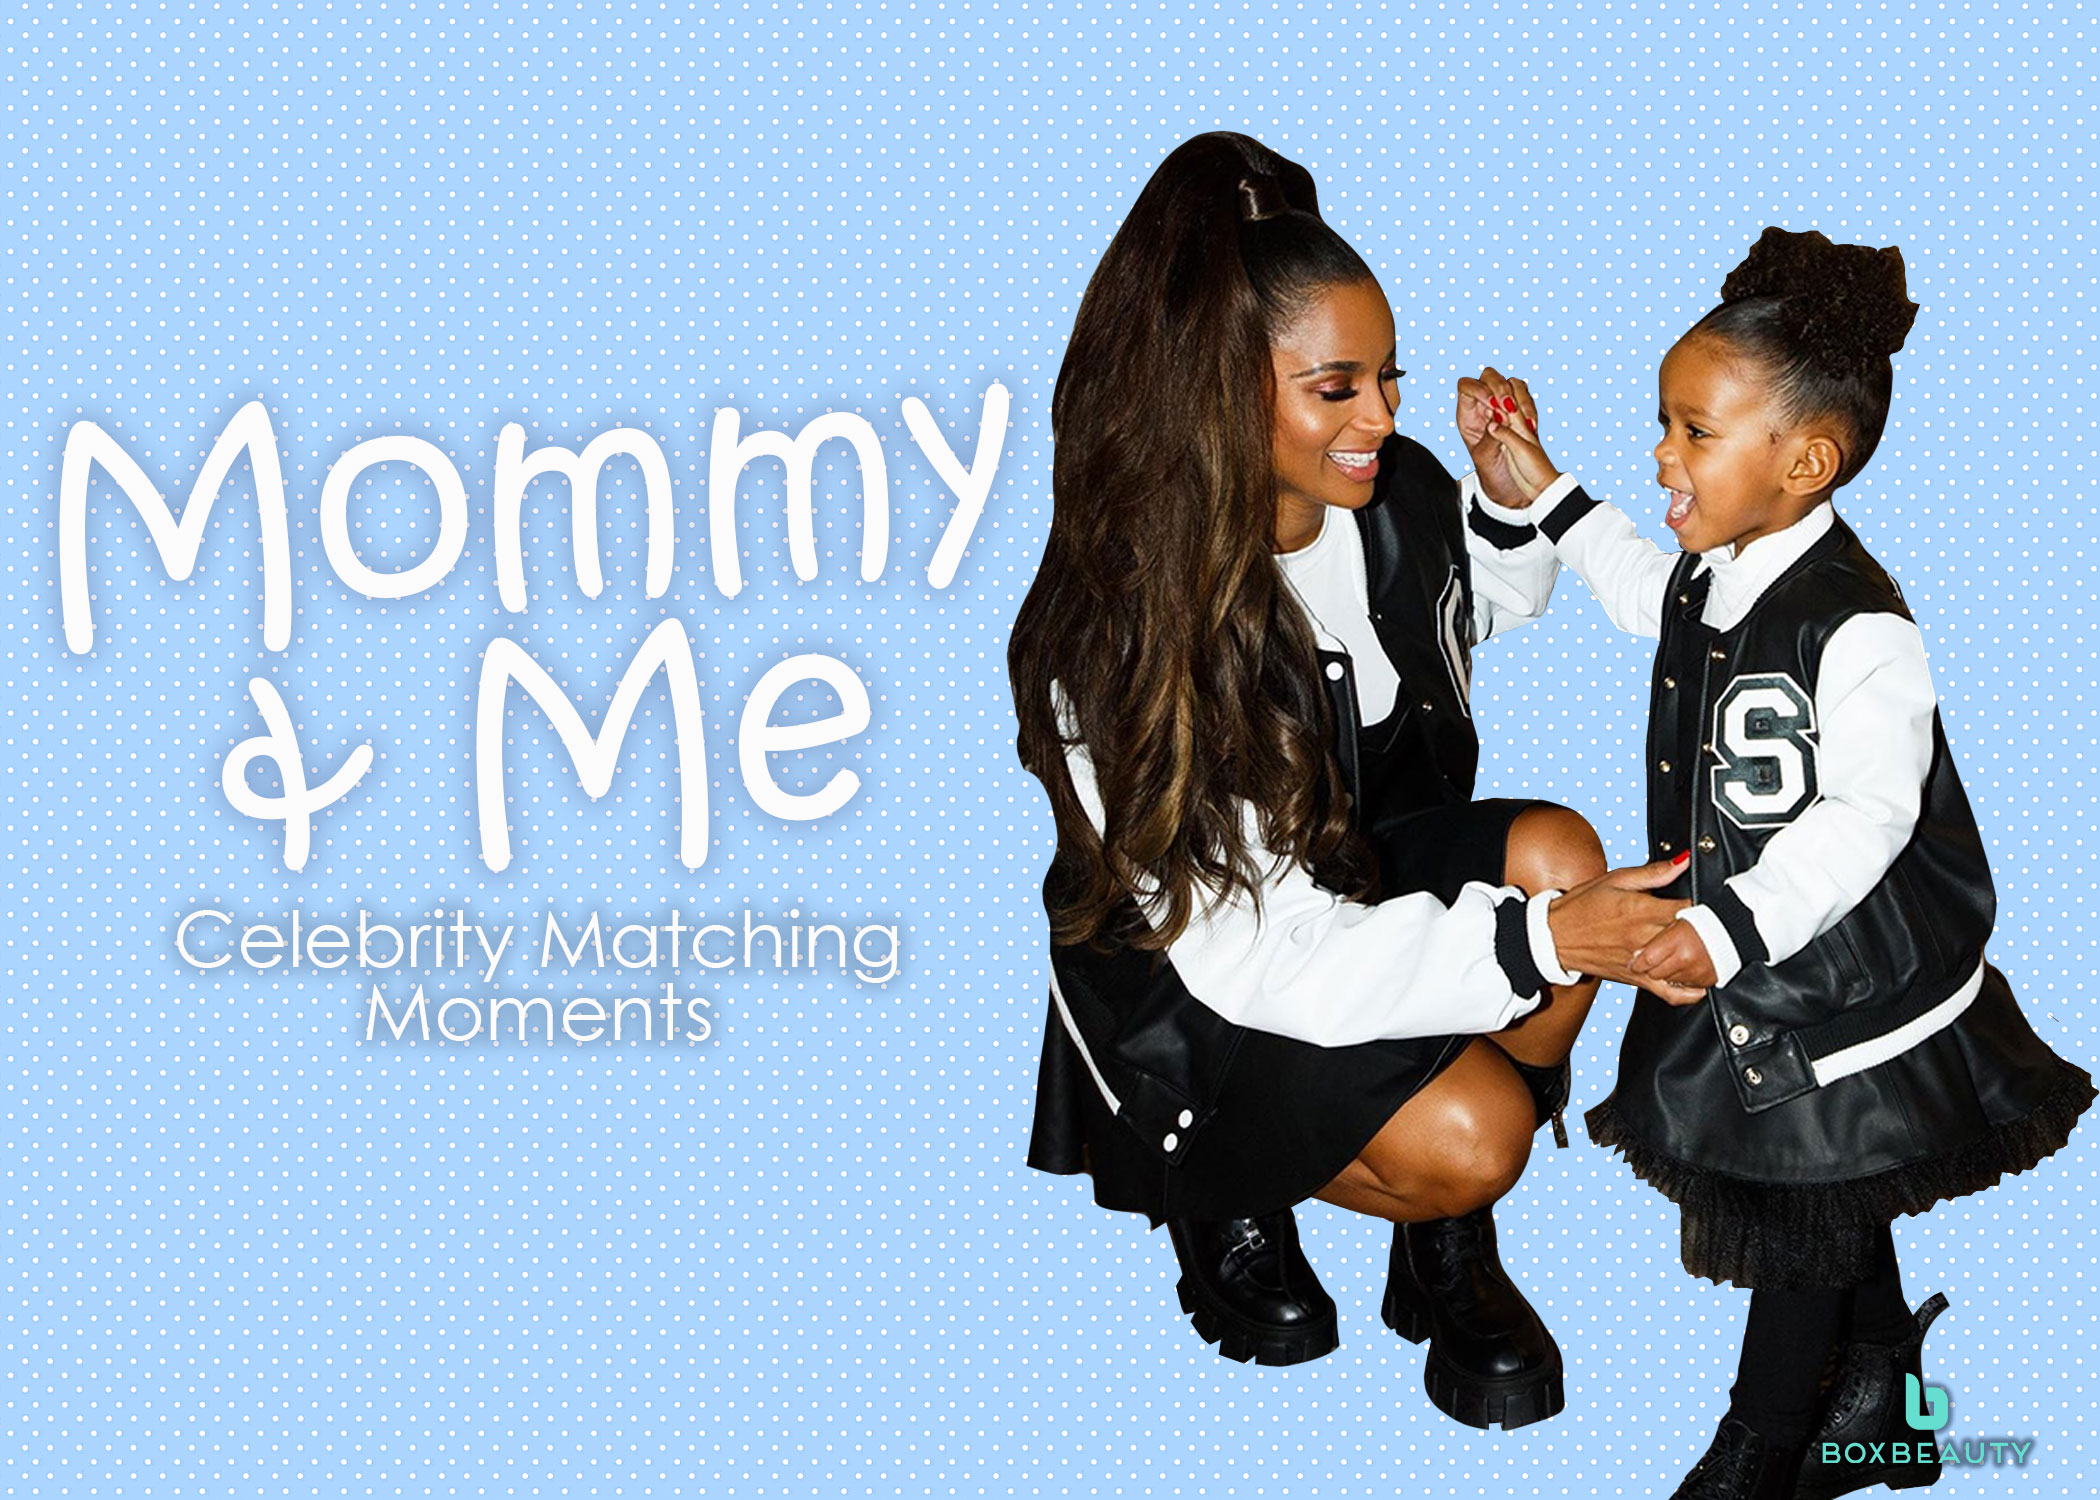 Mommy & Me: Celebrity Matching Moments